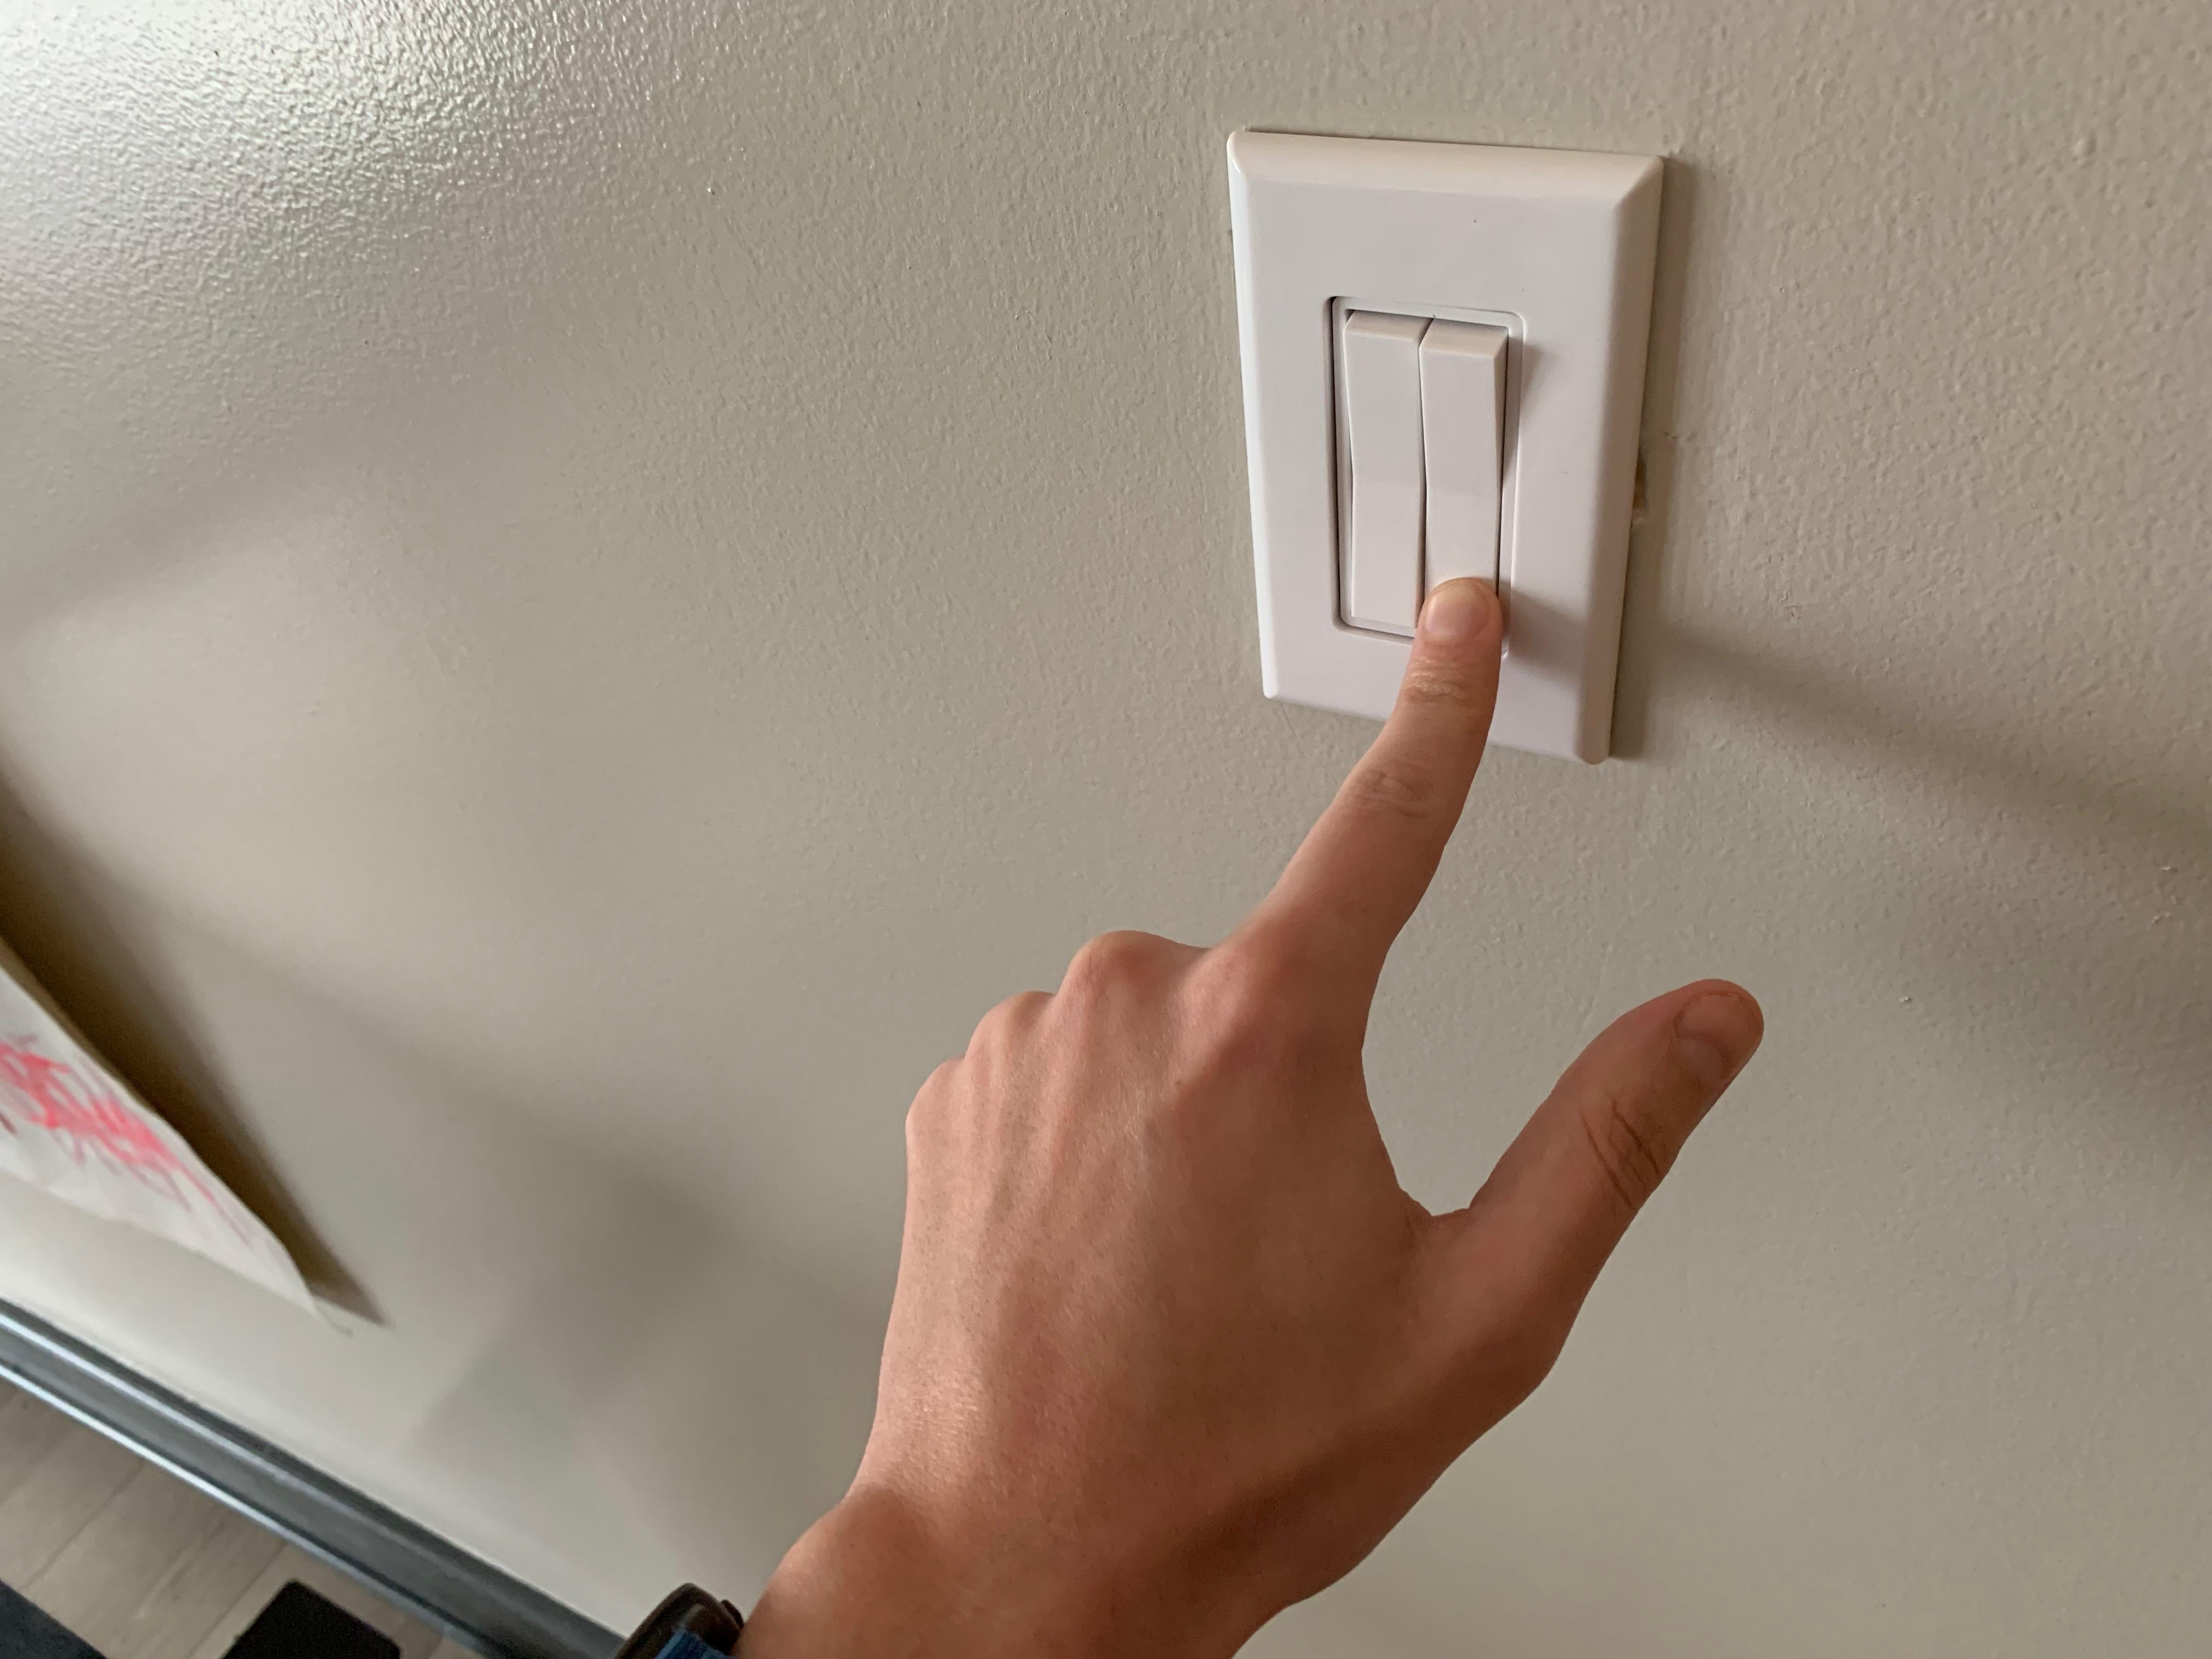 Keep the 'Friends of Hue' switches coming